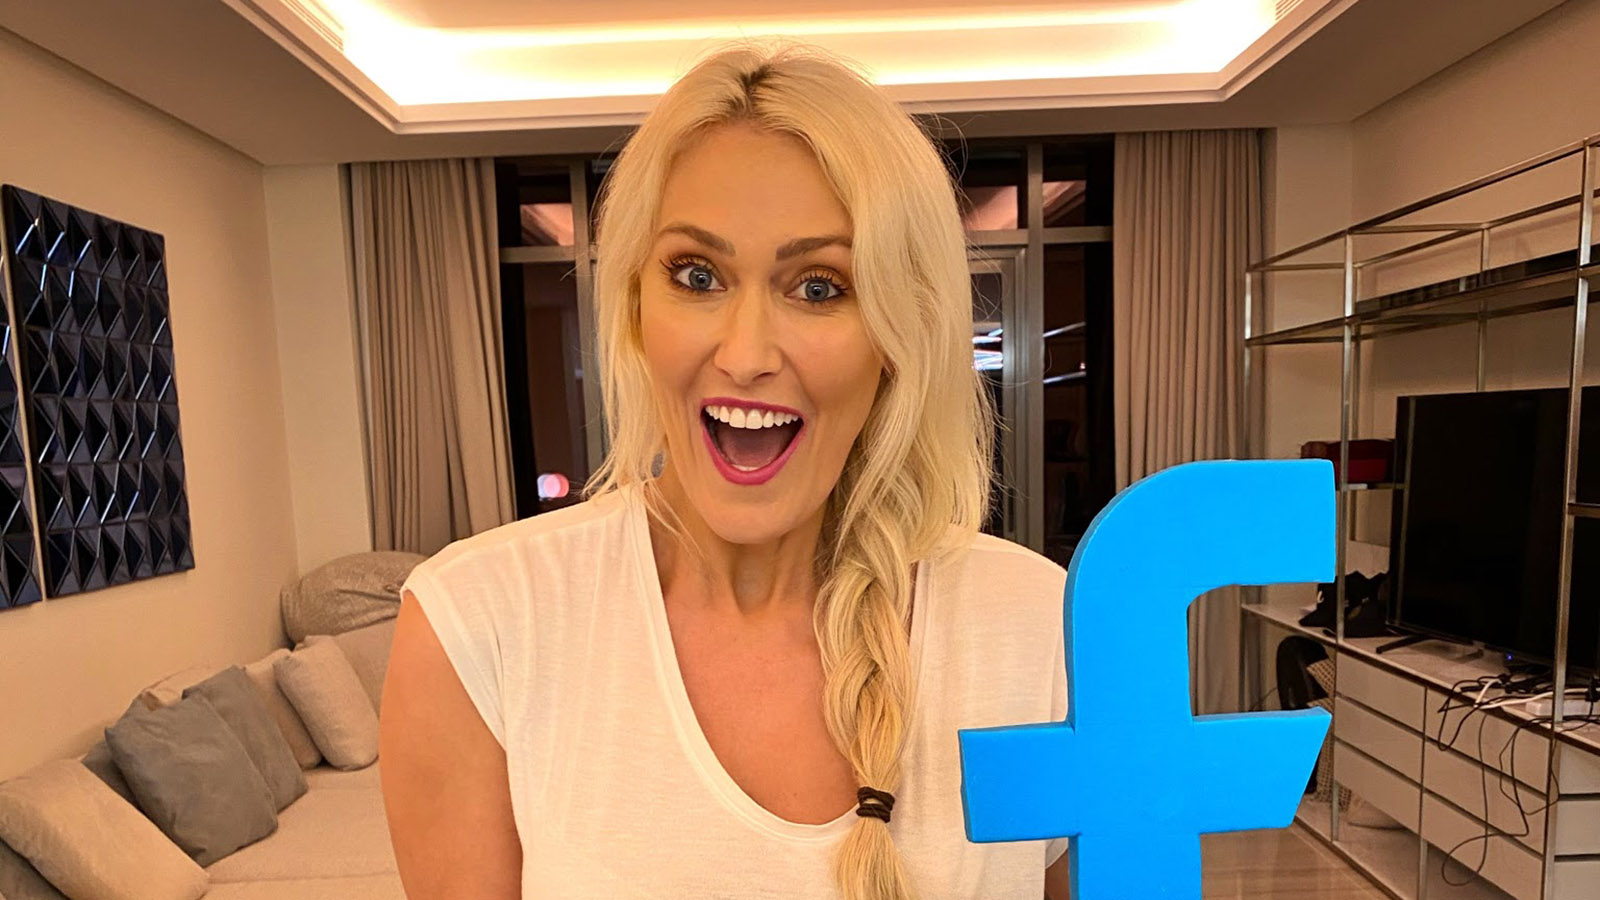 Supercar Blondie hits 30m Facebook followers